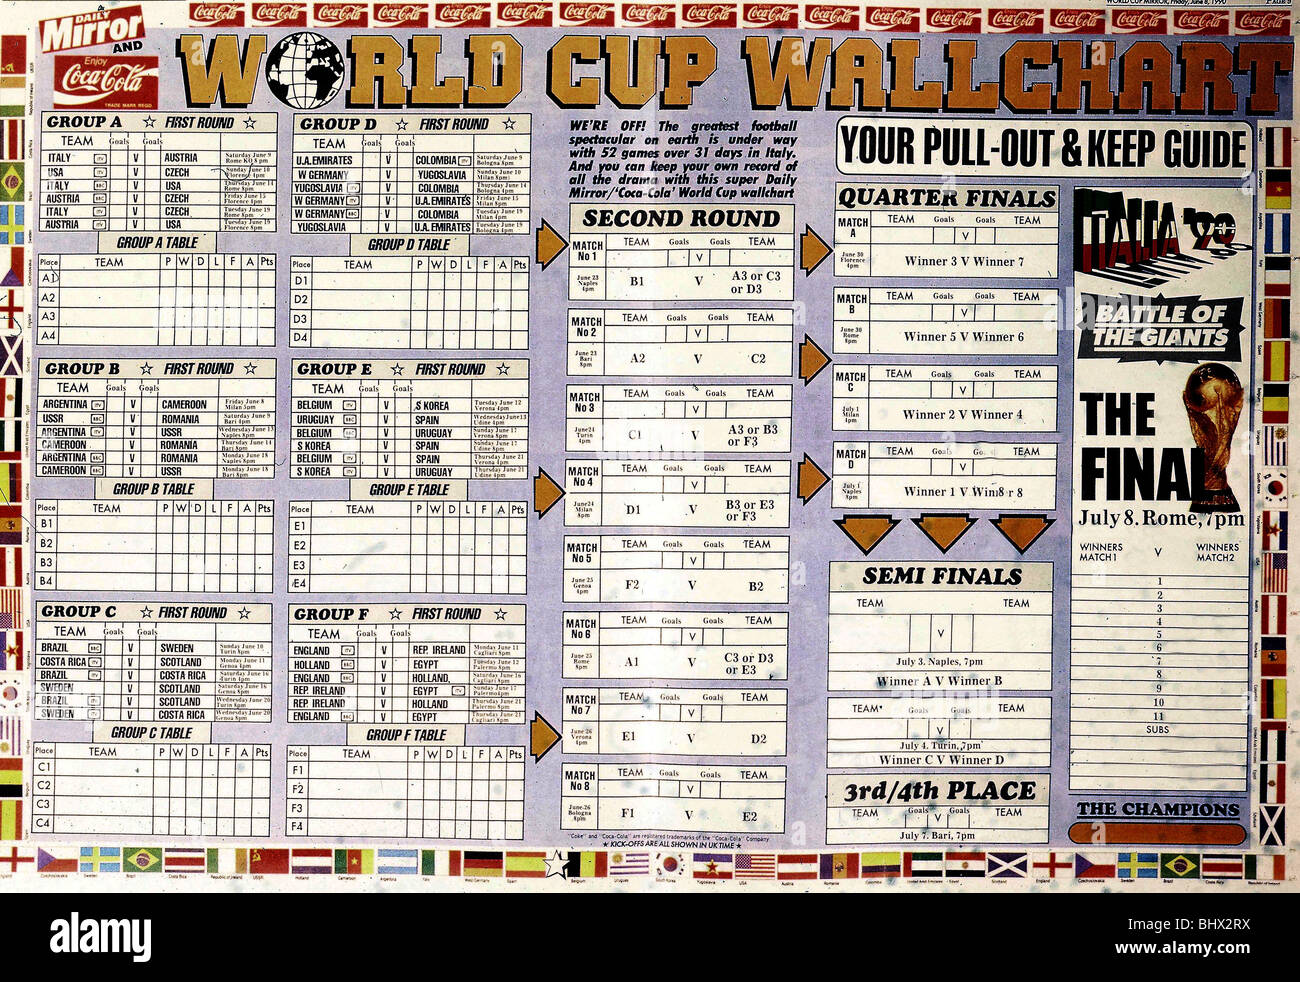 Daily Globo Daily Mirror World Cup Wallchart For 1990 Finals Held In